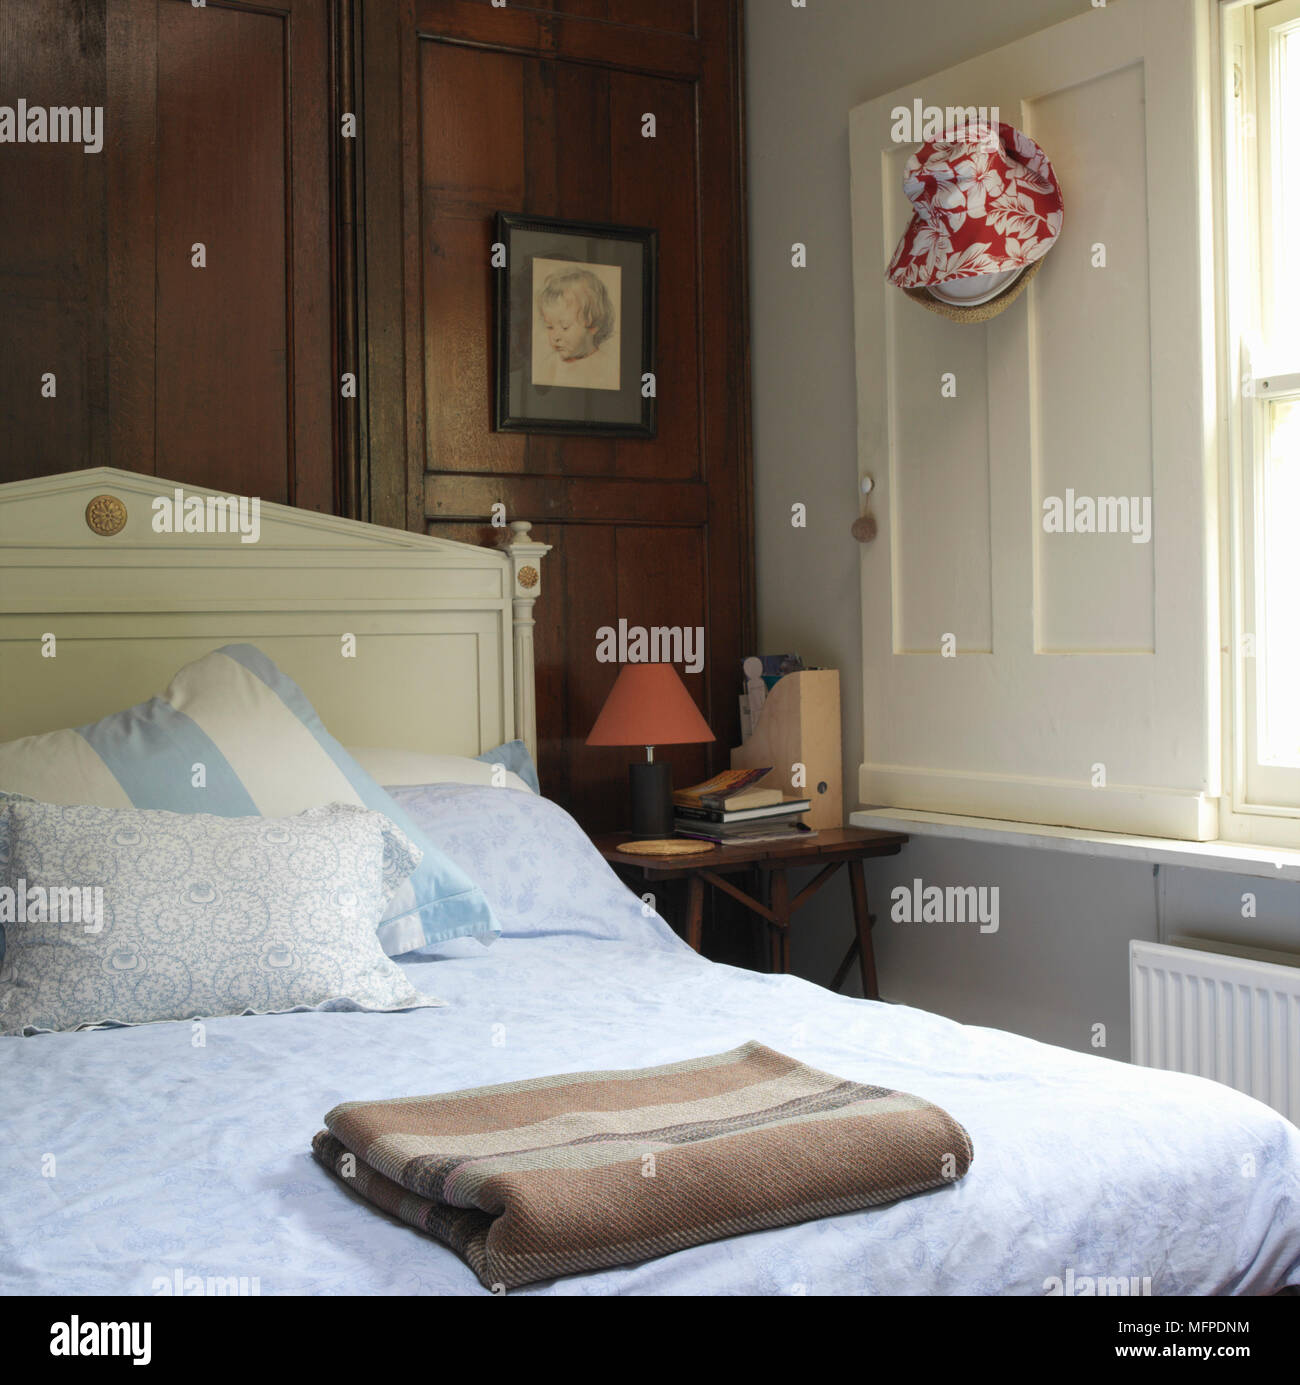 Detail Of A Traditional Bedroom Double Bed With A Wooden Headboard